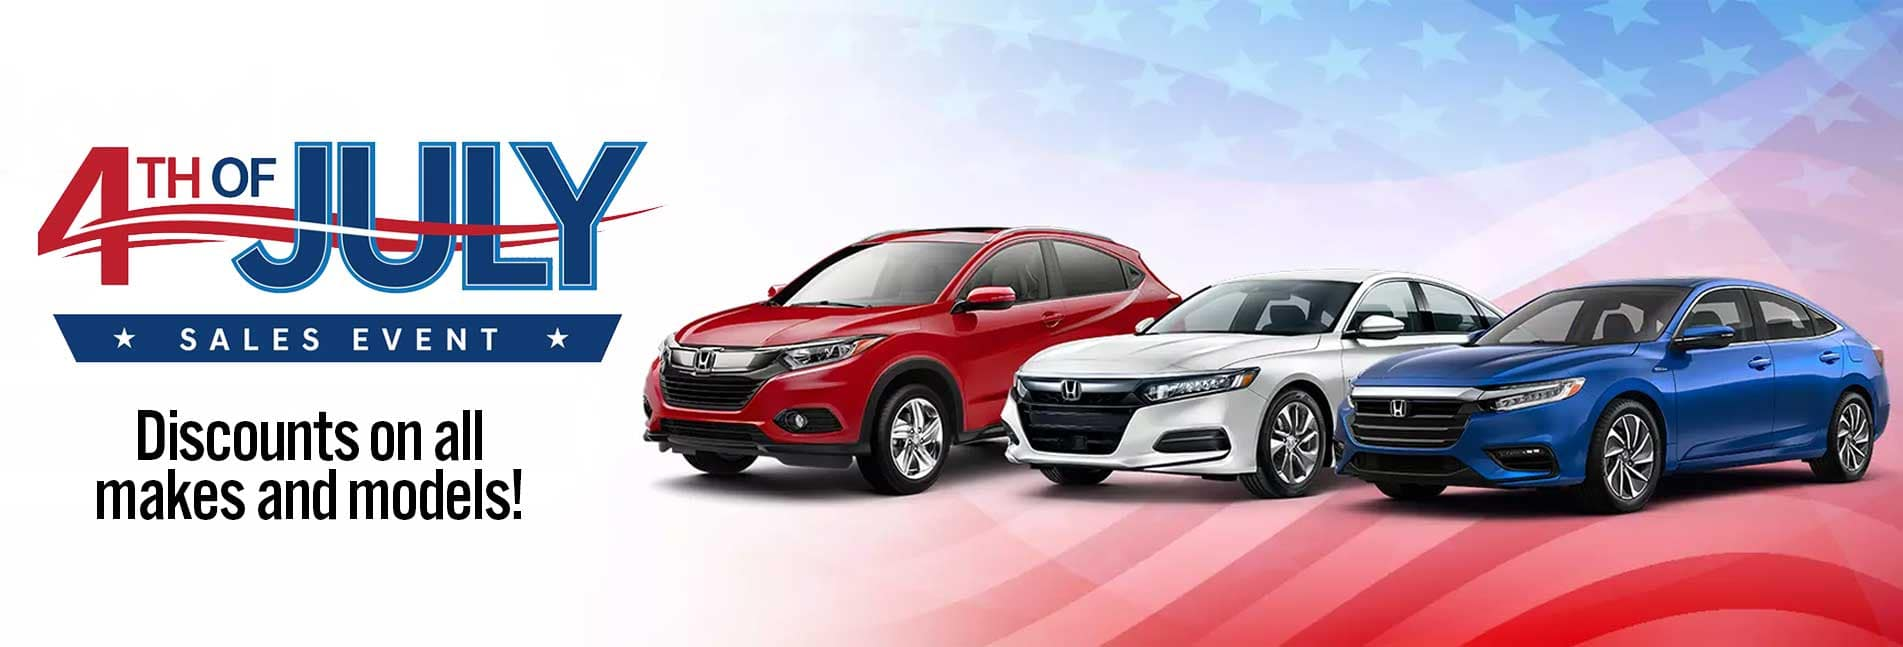 Hillside Auto Outlet New Used Car Dealer In Jamaica